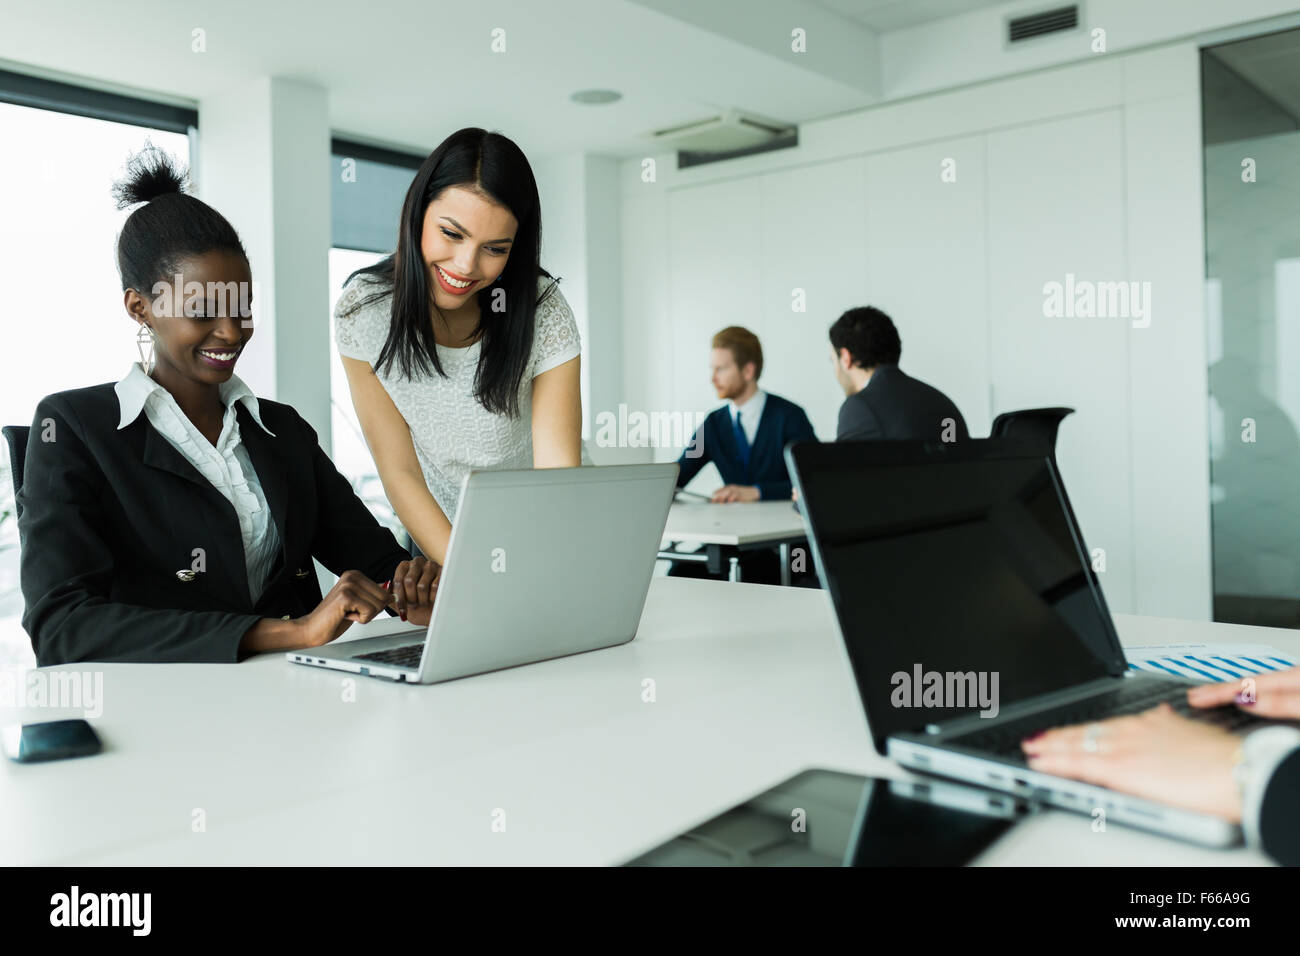 Black and white businesswomen looking at a laptop and working in a neat office environment - Stock Image